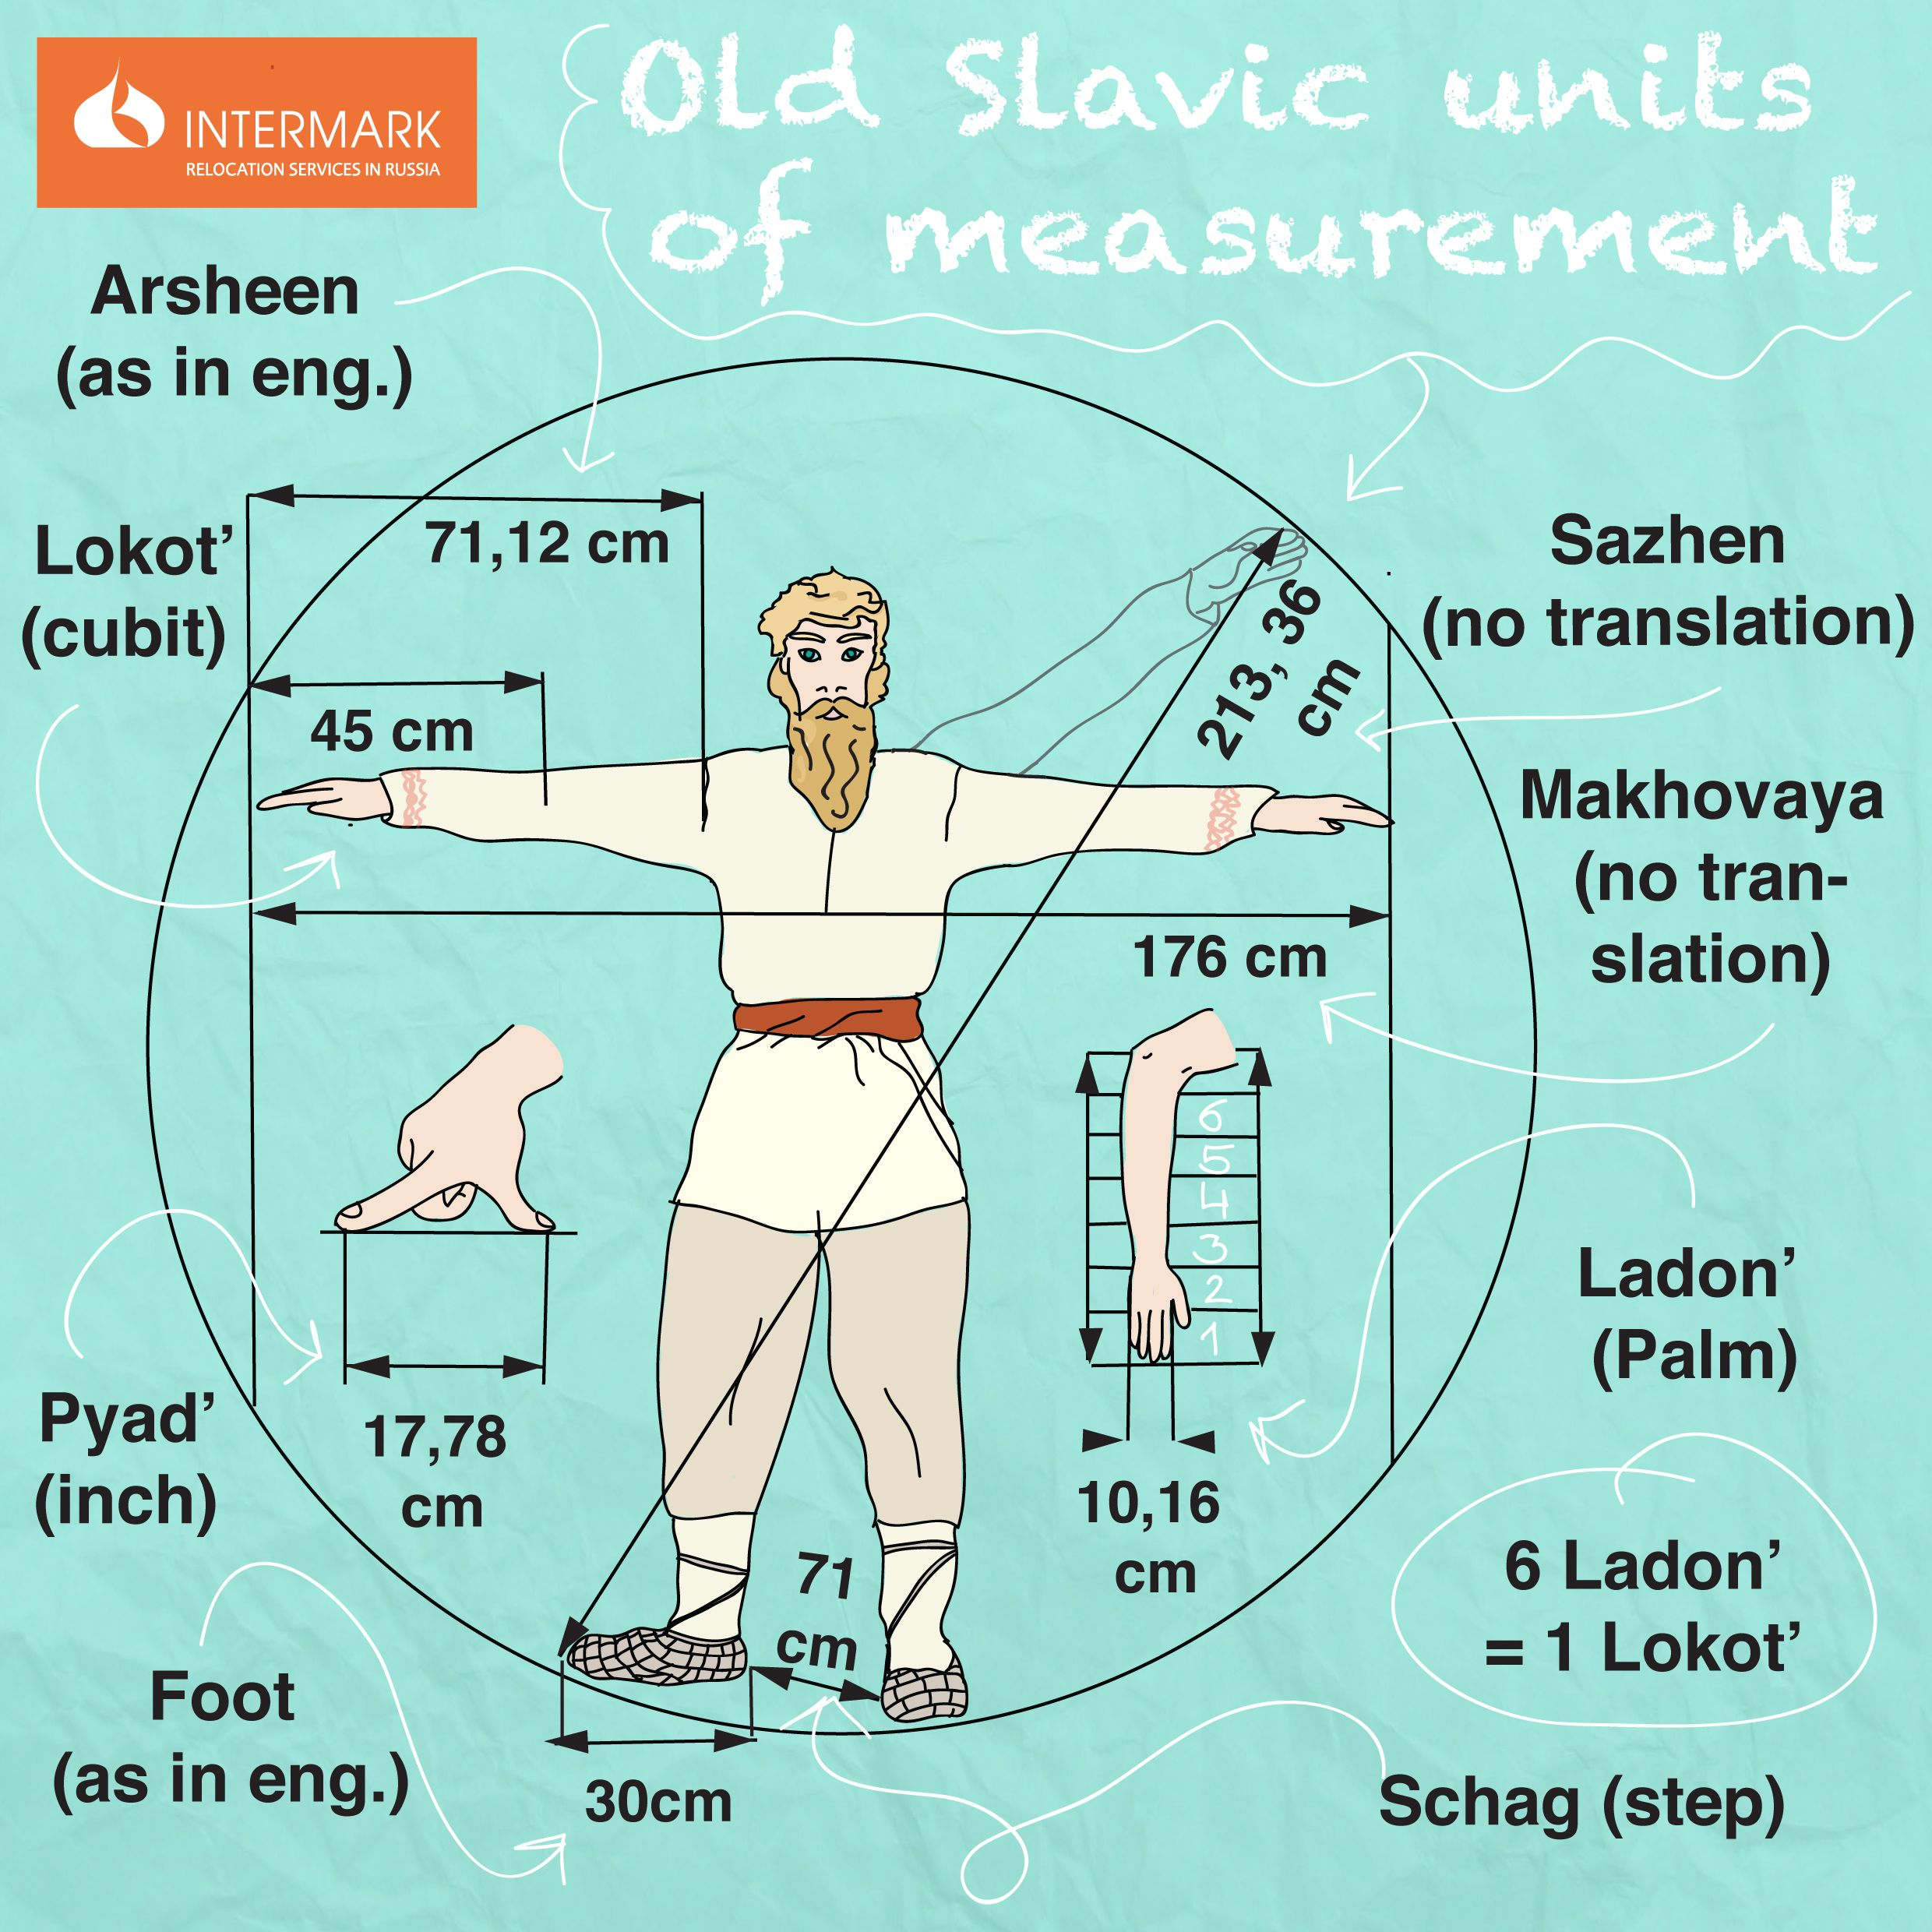 Old Slavic Units Of Measurement Russian Traditions 15 Amp Singlepole Arc Fault Circuit Breakerq115afp The Home Depot Unit